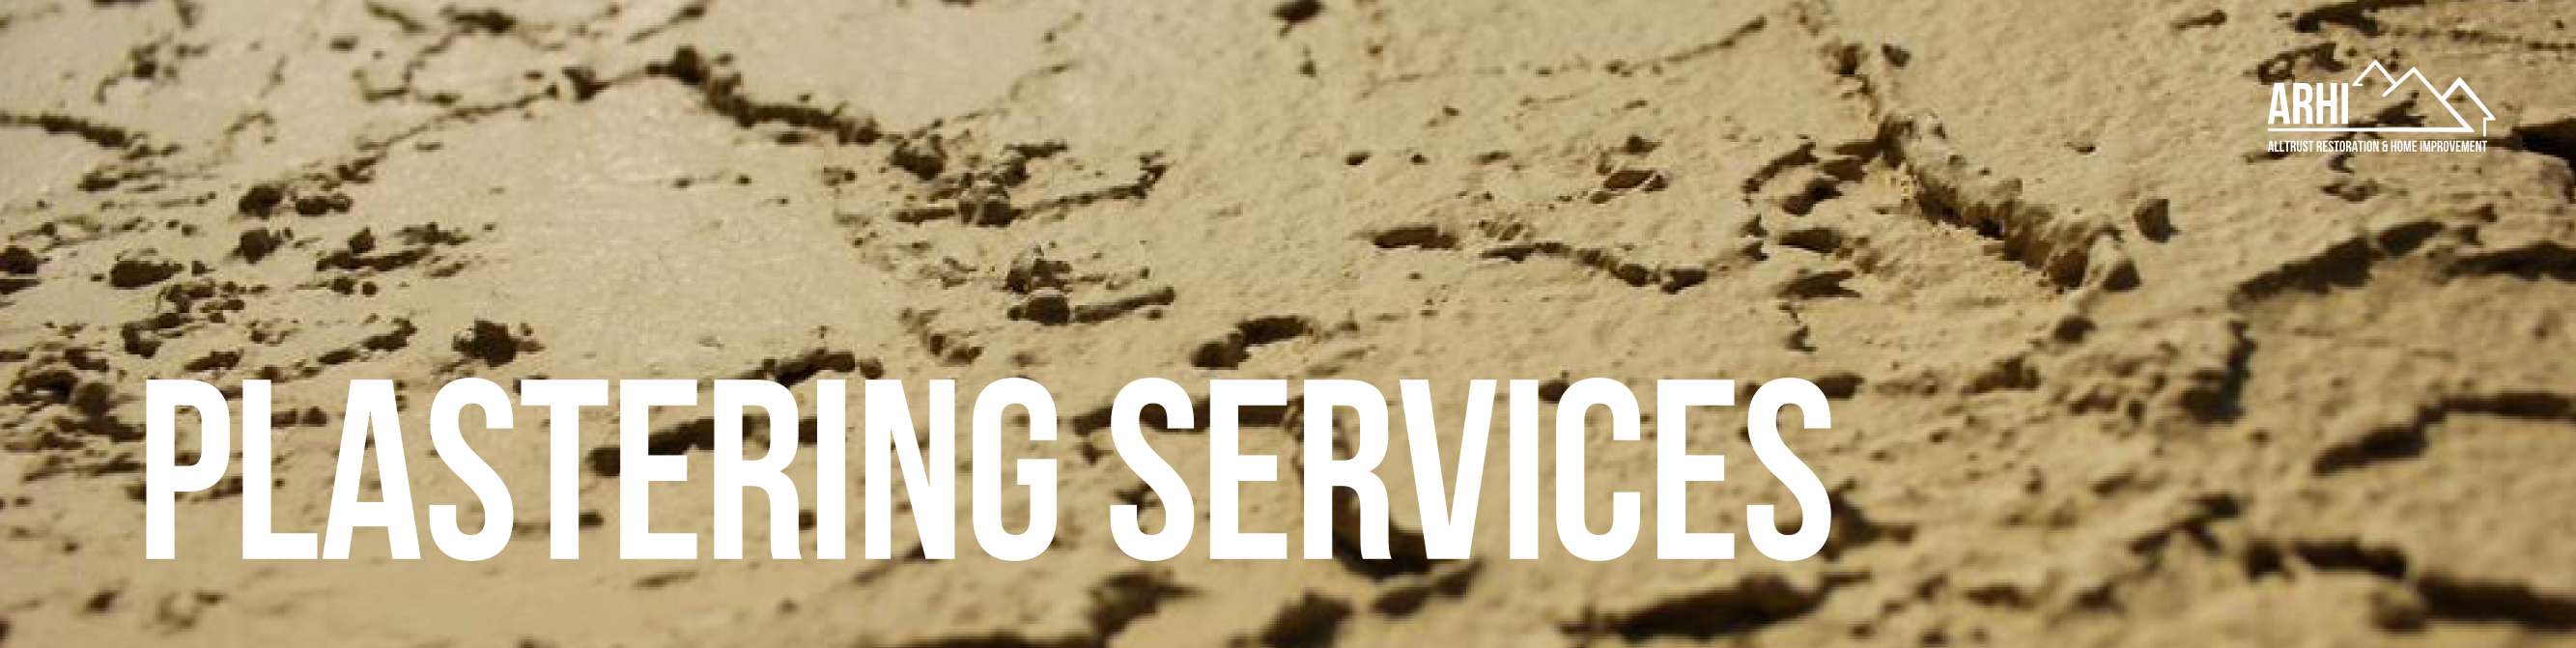 plastering_services